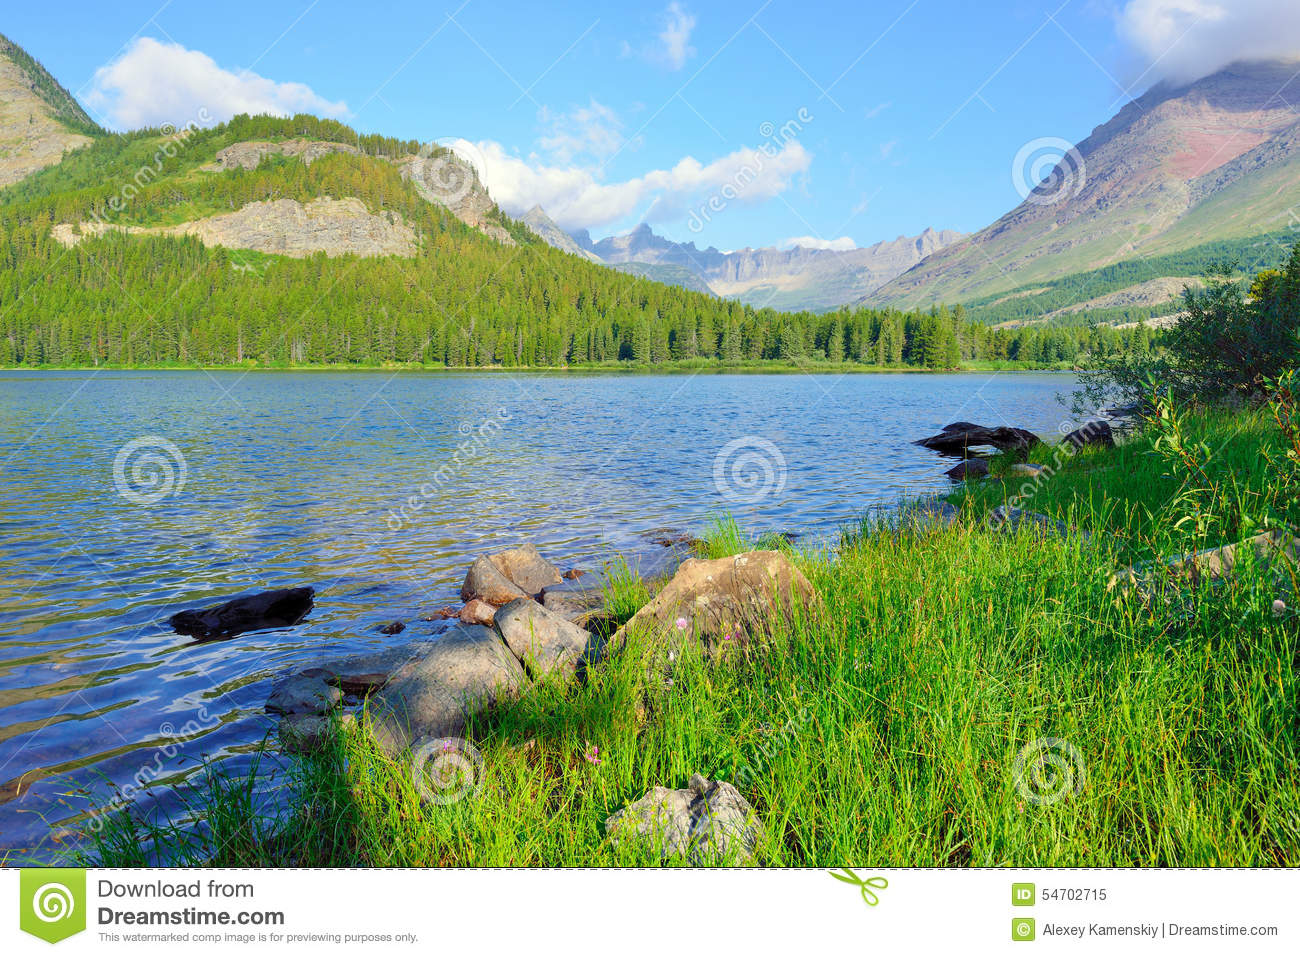 Grinnell Lake clipart #4, Download drawings